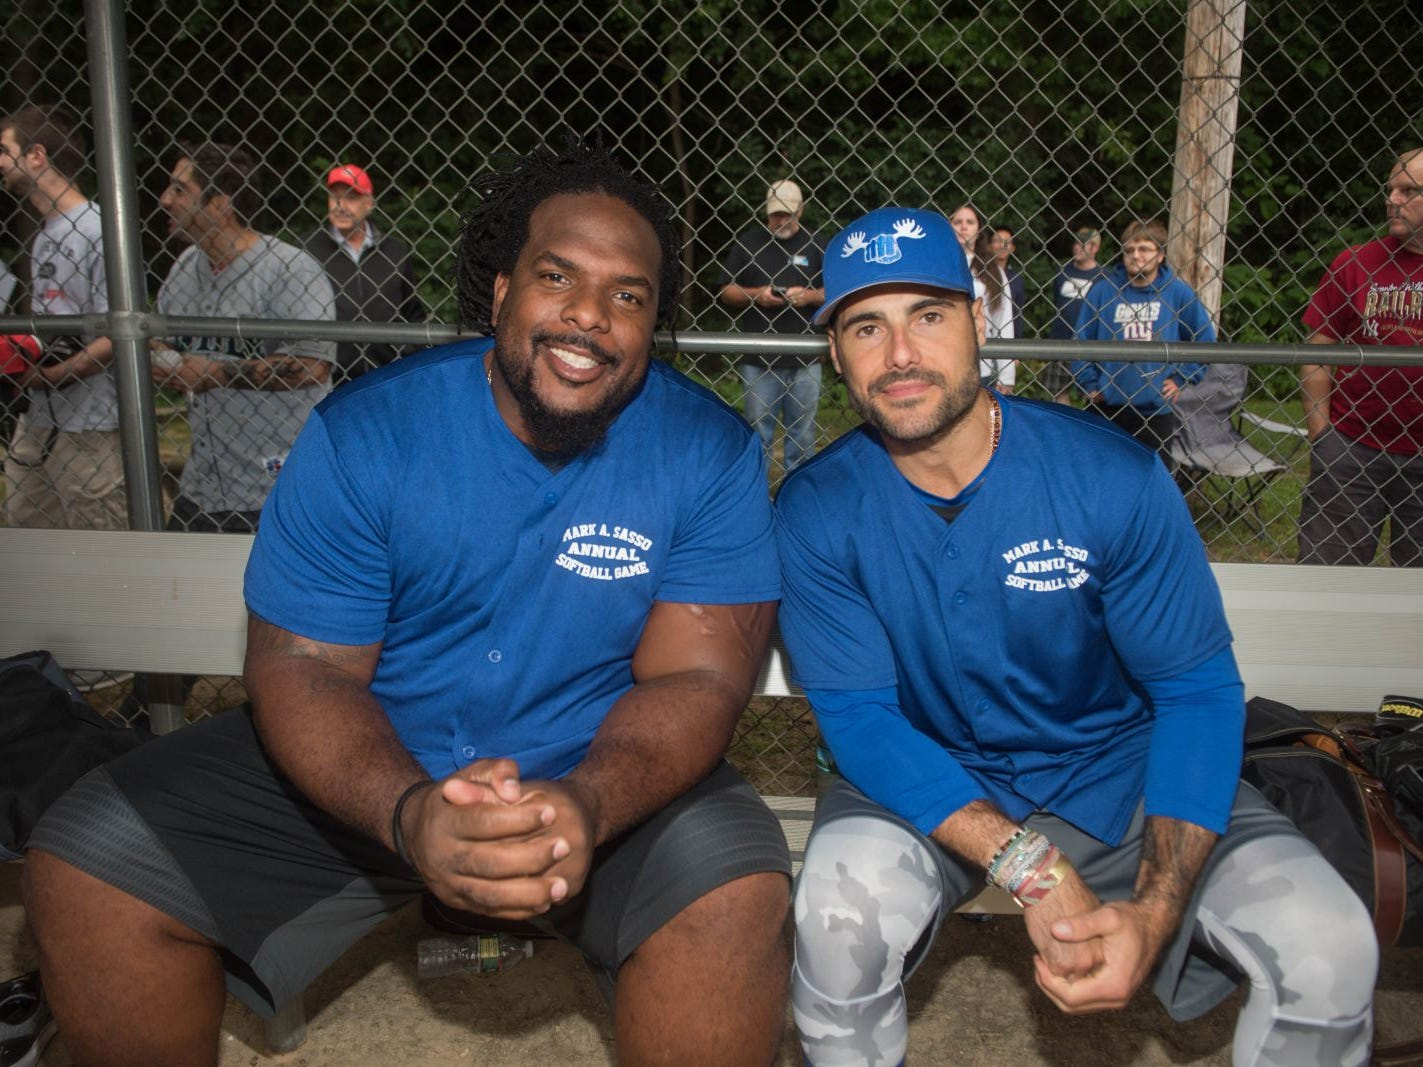 Willie Colon and Rick DiPietro. Mark A. Sasso Memorial Fund hosted its 10th annual Softball Fundraiser this past Saturday at Wagaraw Baseball Field in Hawthorne. Don La Greca was joined by many of his fellow ESPN personalities and celebrity guests to play against the winning ALRC team from the round robin tournament that took place throughout the day. 09/08/2018